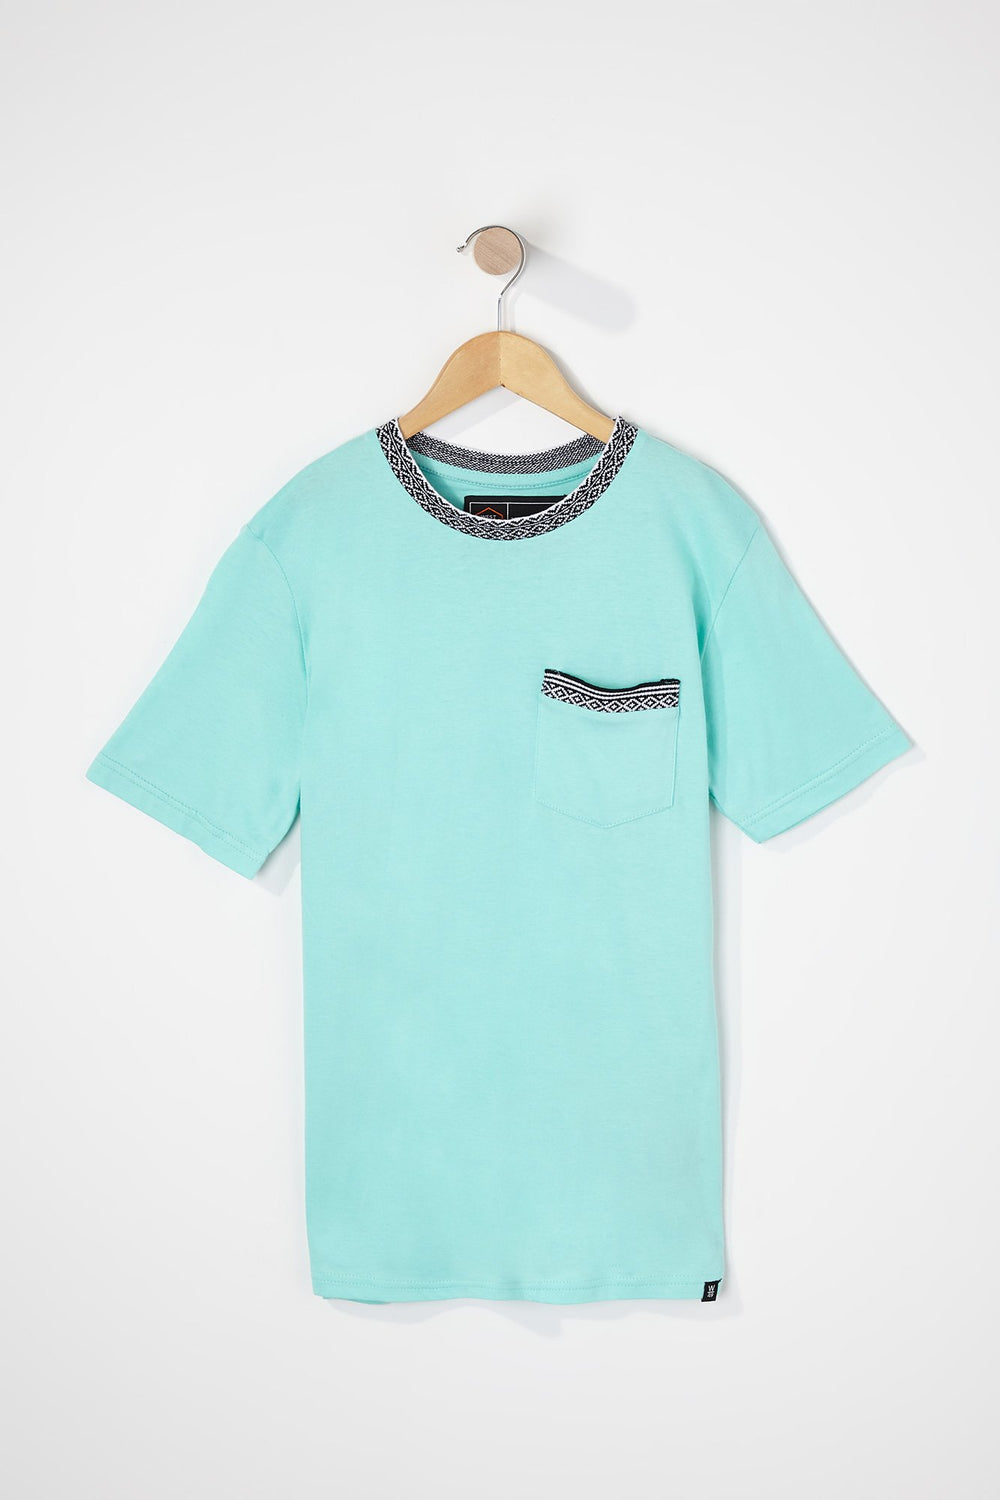 West49 Boys Contrast Pocket And Collar T-Shirt Turquoise